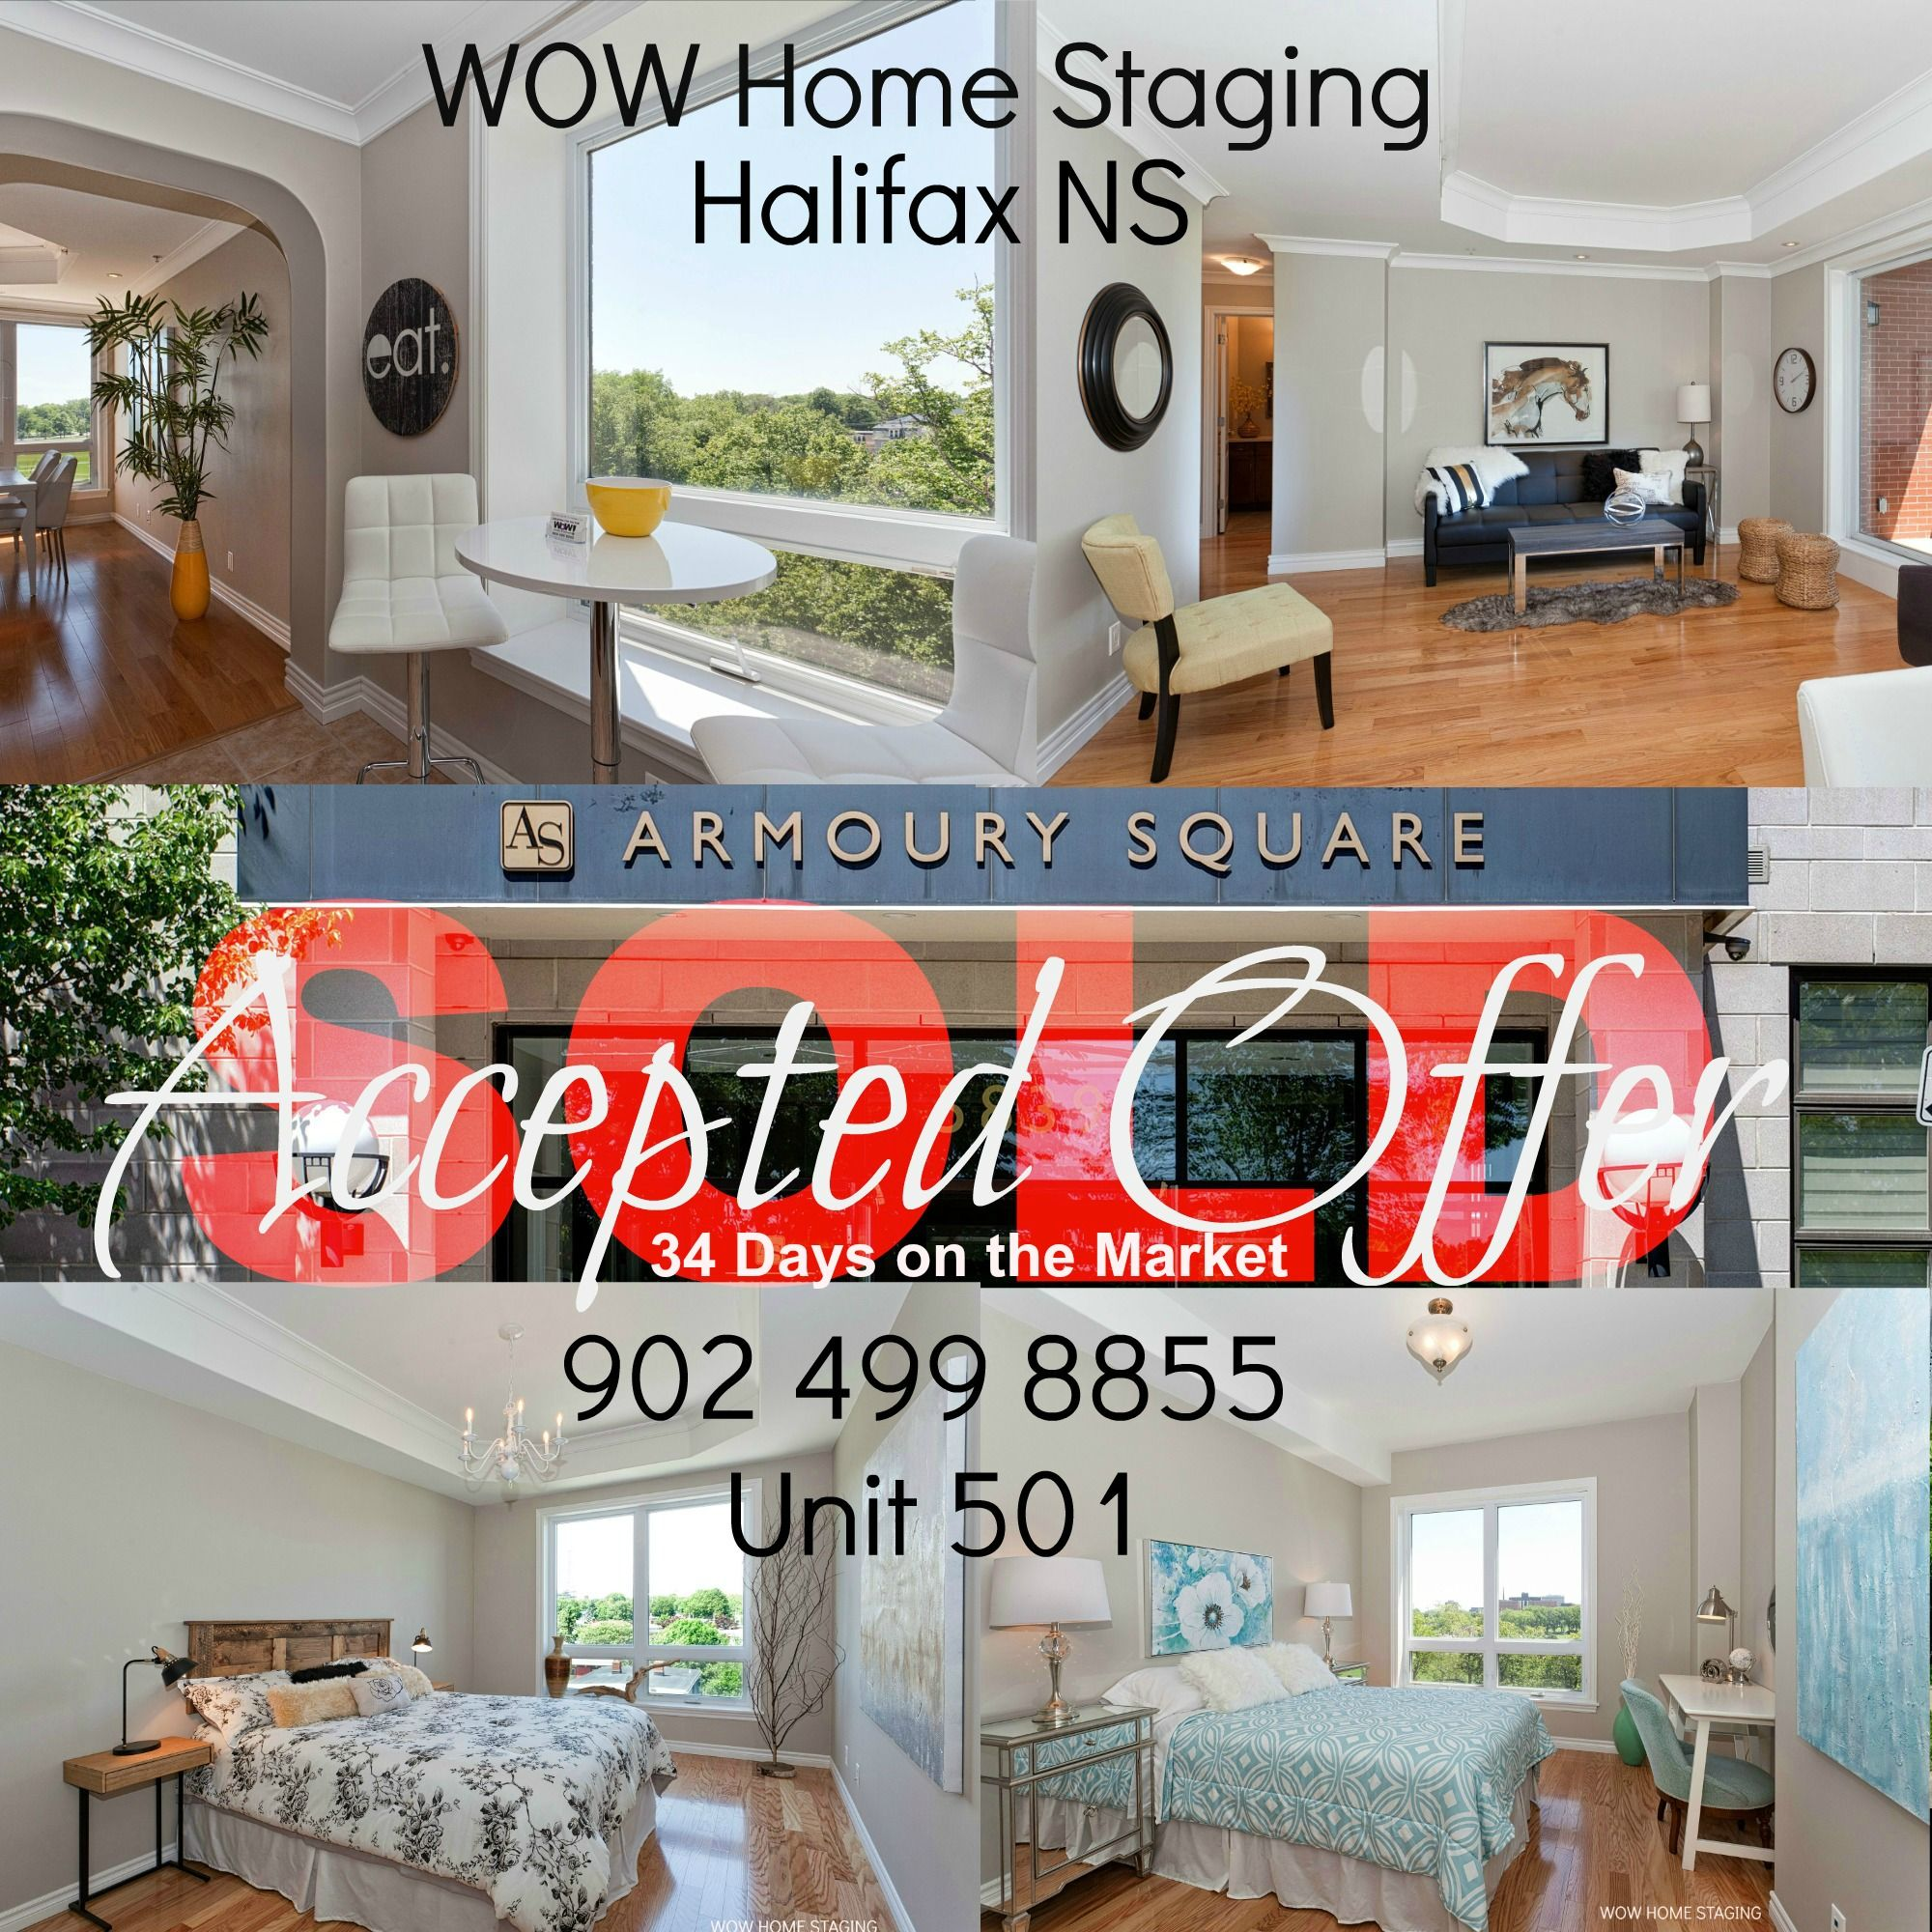 Pin By Rp Interiors & More... + WOW! On WOW! HOME STAGING